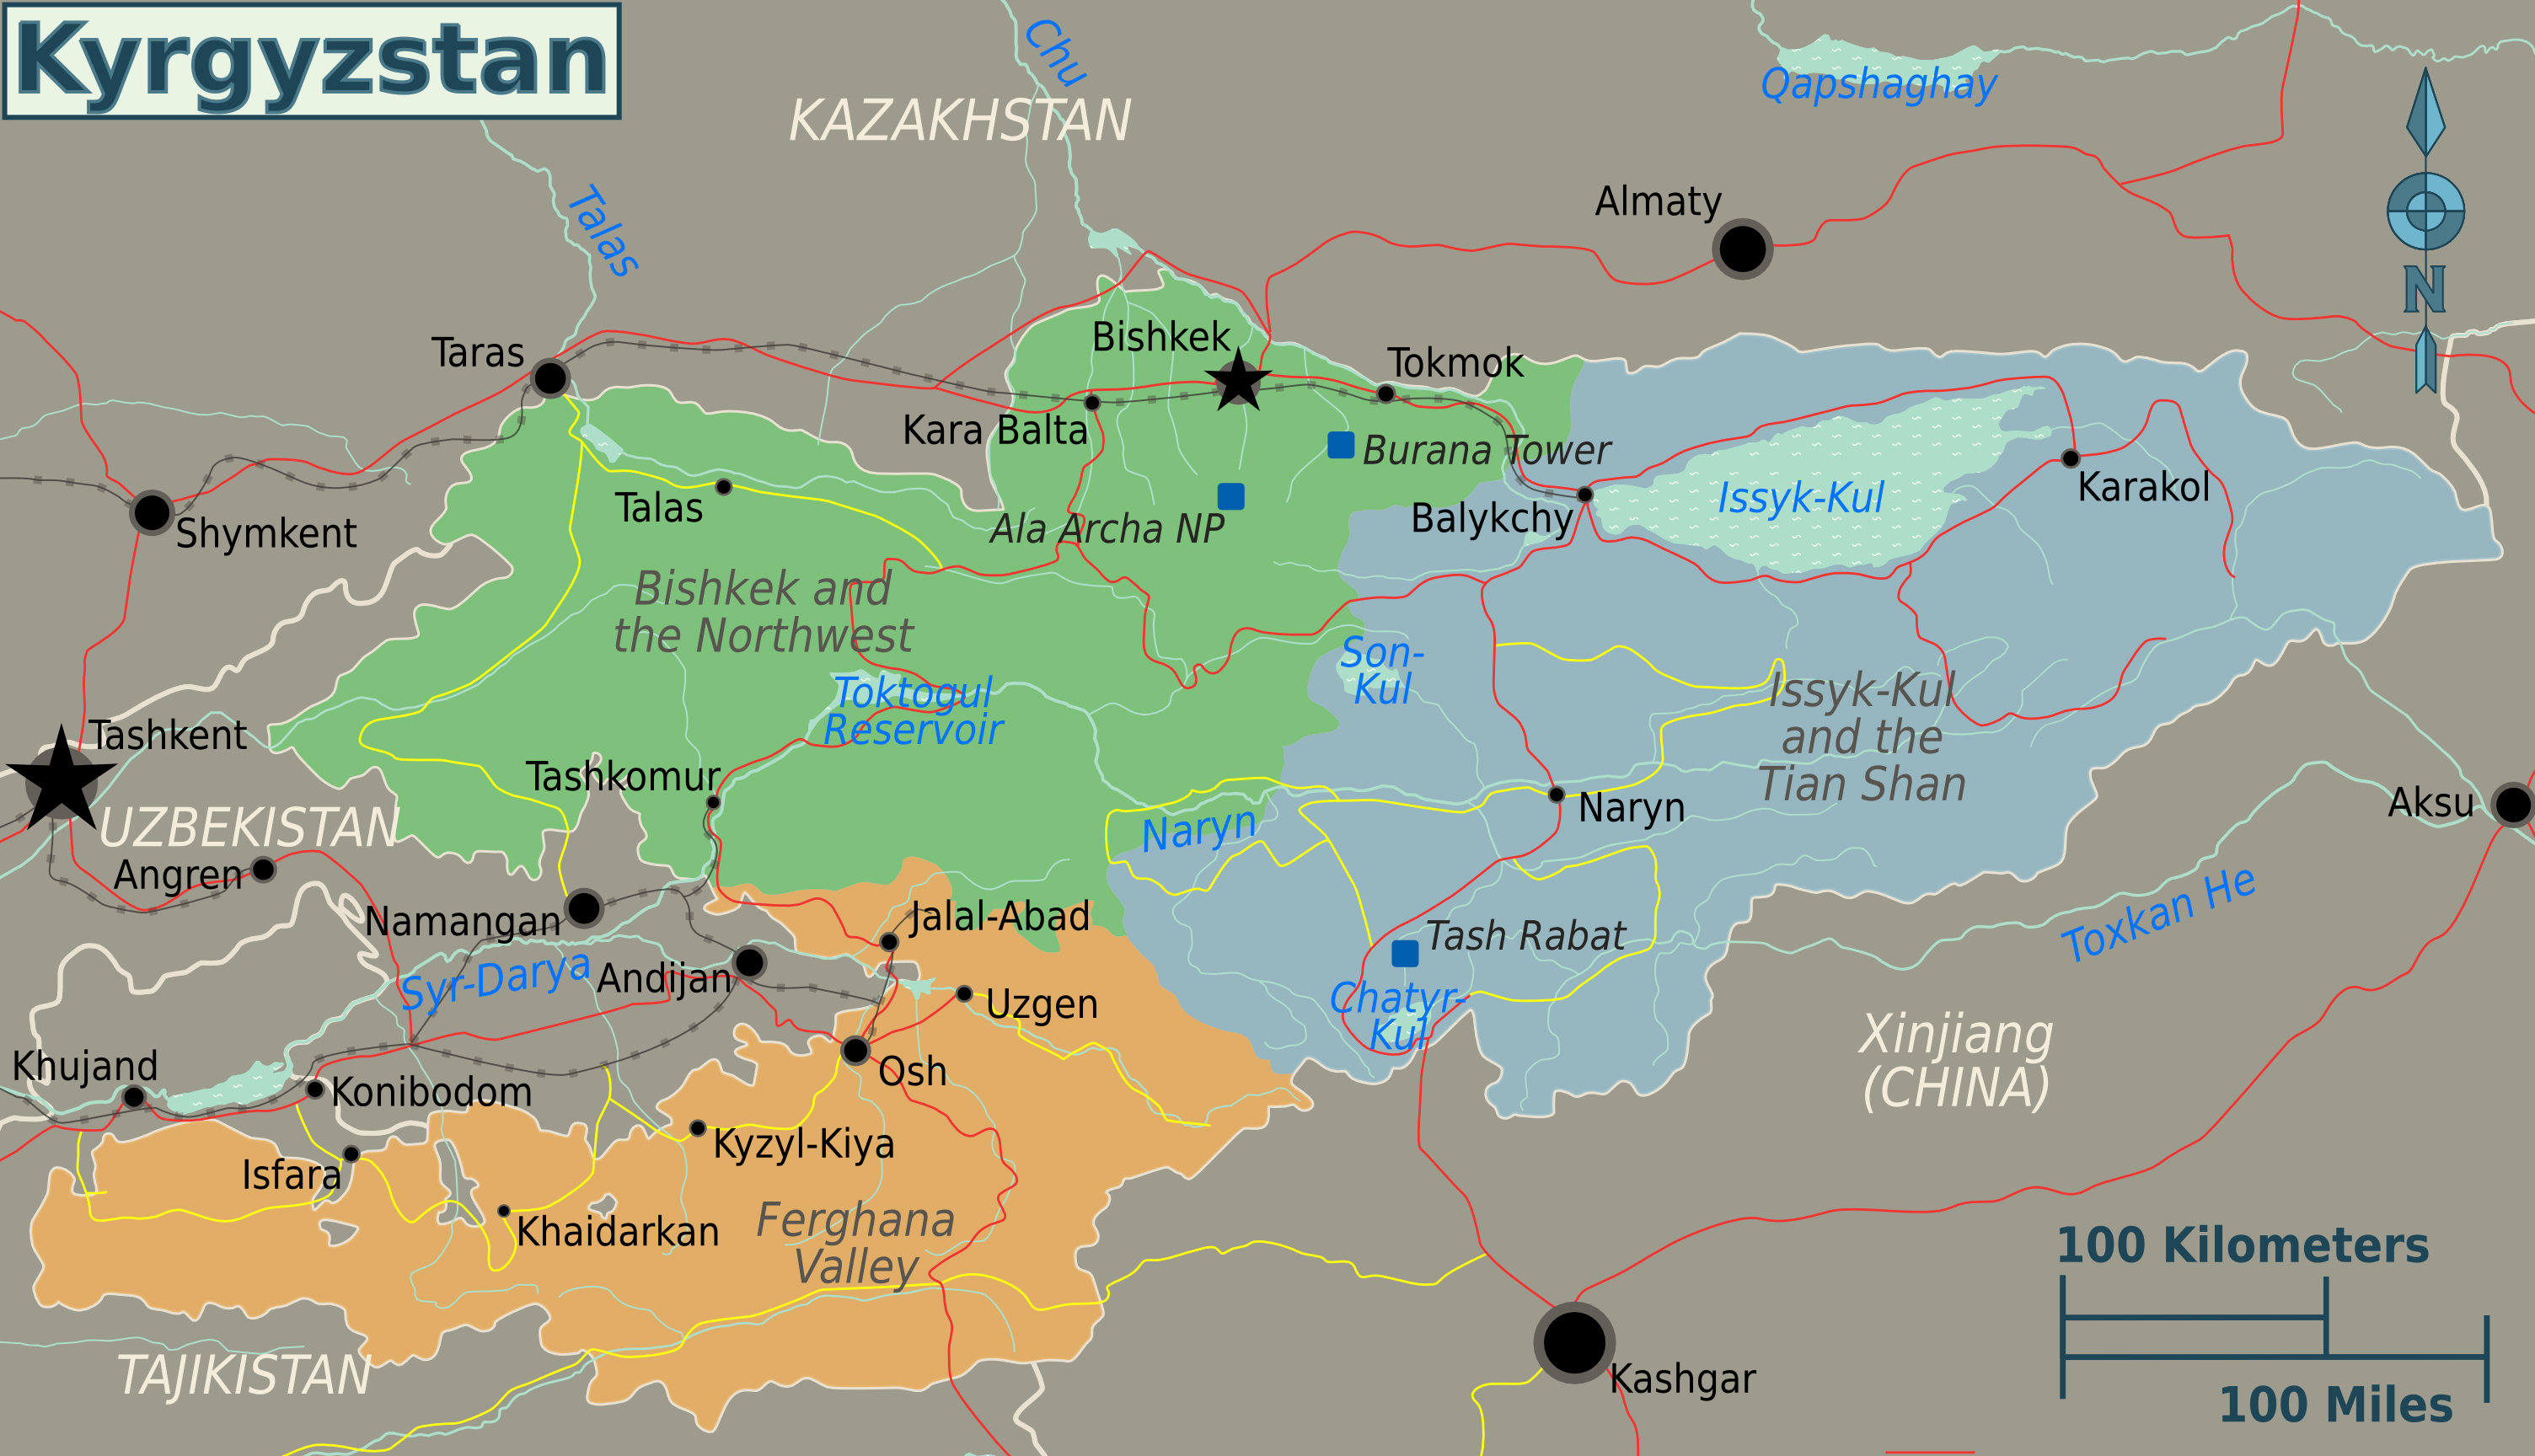 Large regions map of kyrgyzstan kyrgyzstan asia mapsland large regions map of kyrgyzstan gumiabroncs Choice Image